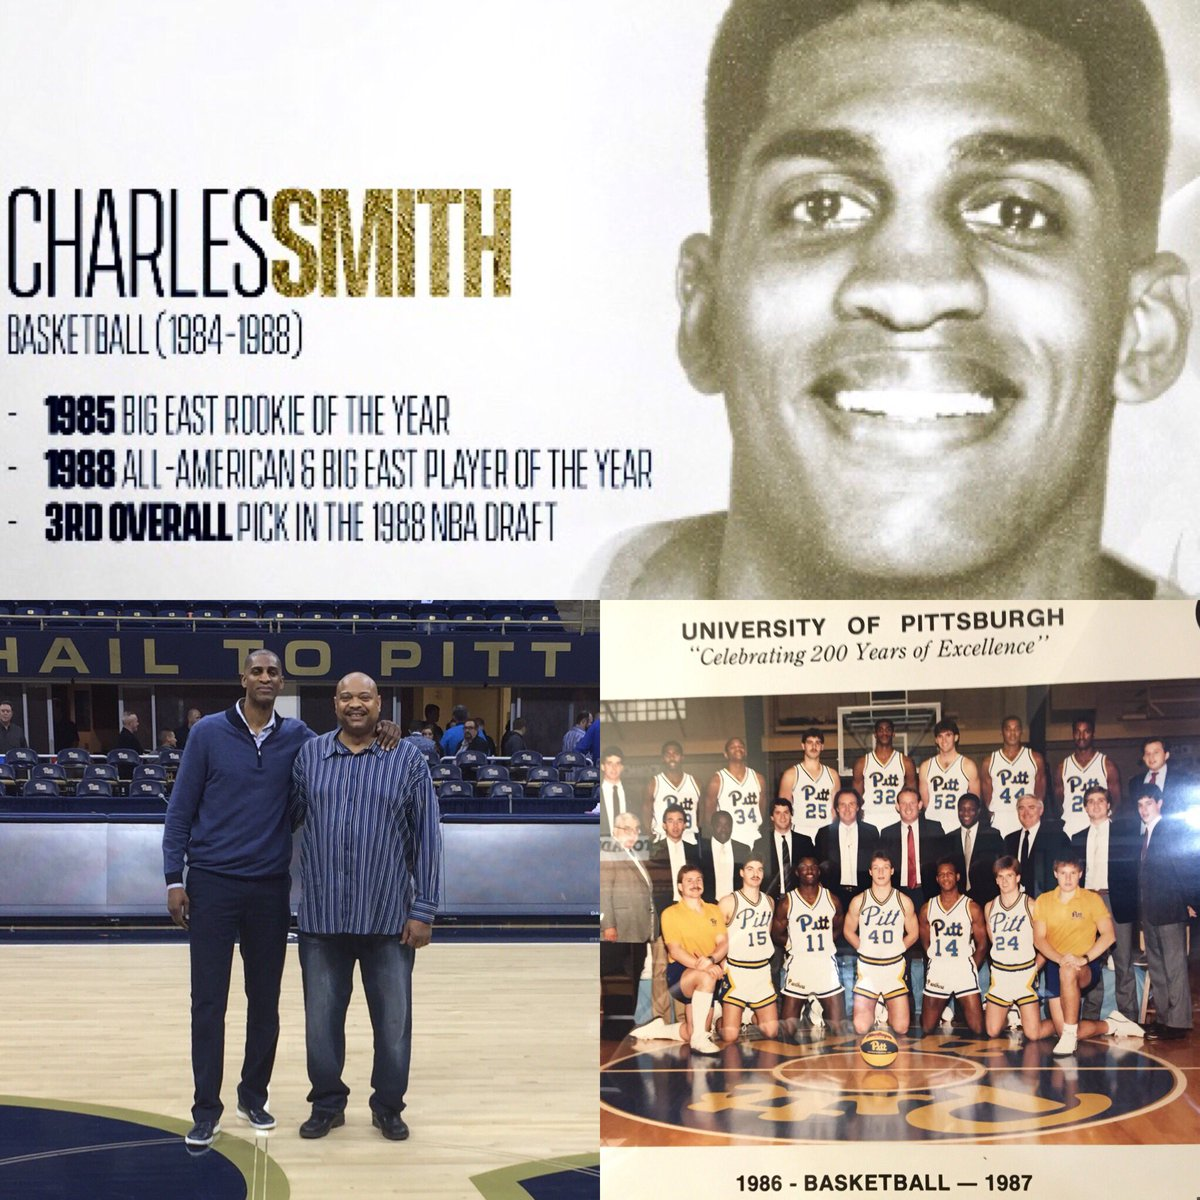 Grateful to be inducted into the University of Pittsburgh Hall of Fame. #H2P #pittbasketball